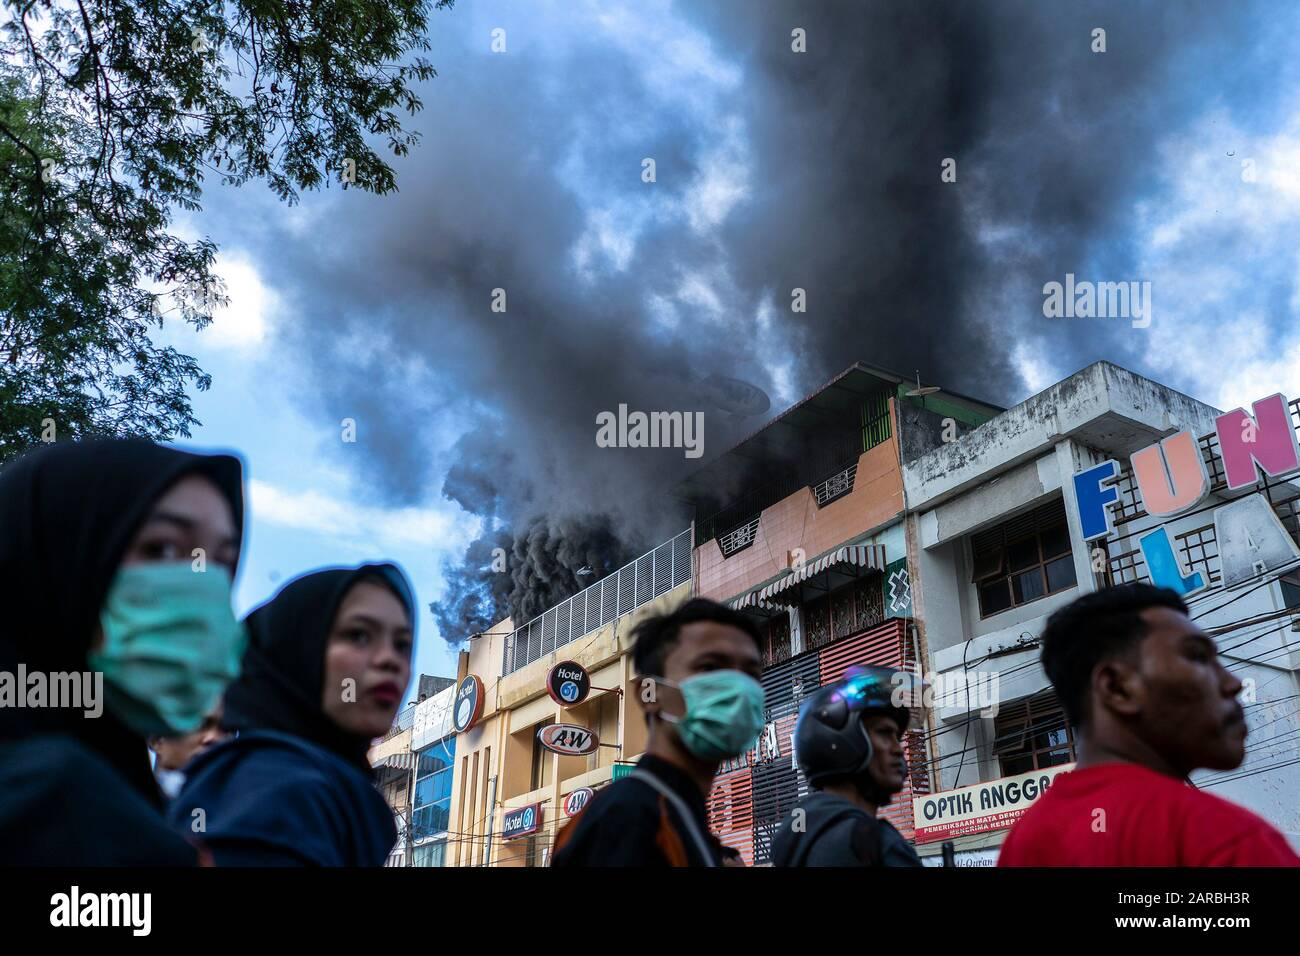 View Of A W Fast Foods Restaurant On Fire In Banda Aceh The Incident Allegedly Caused By Fire That Originated From A Warehouse Near A Fast Food Restaurant Stock Photo Alamy